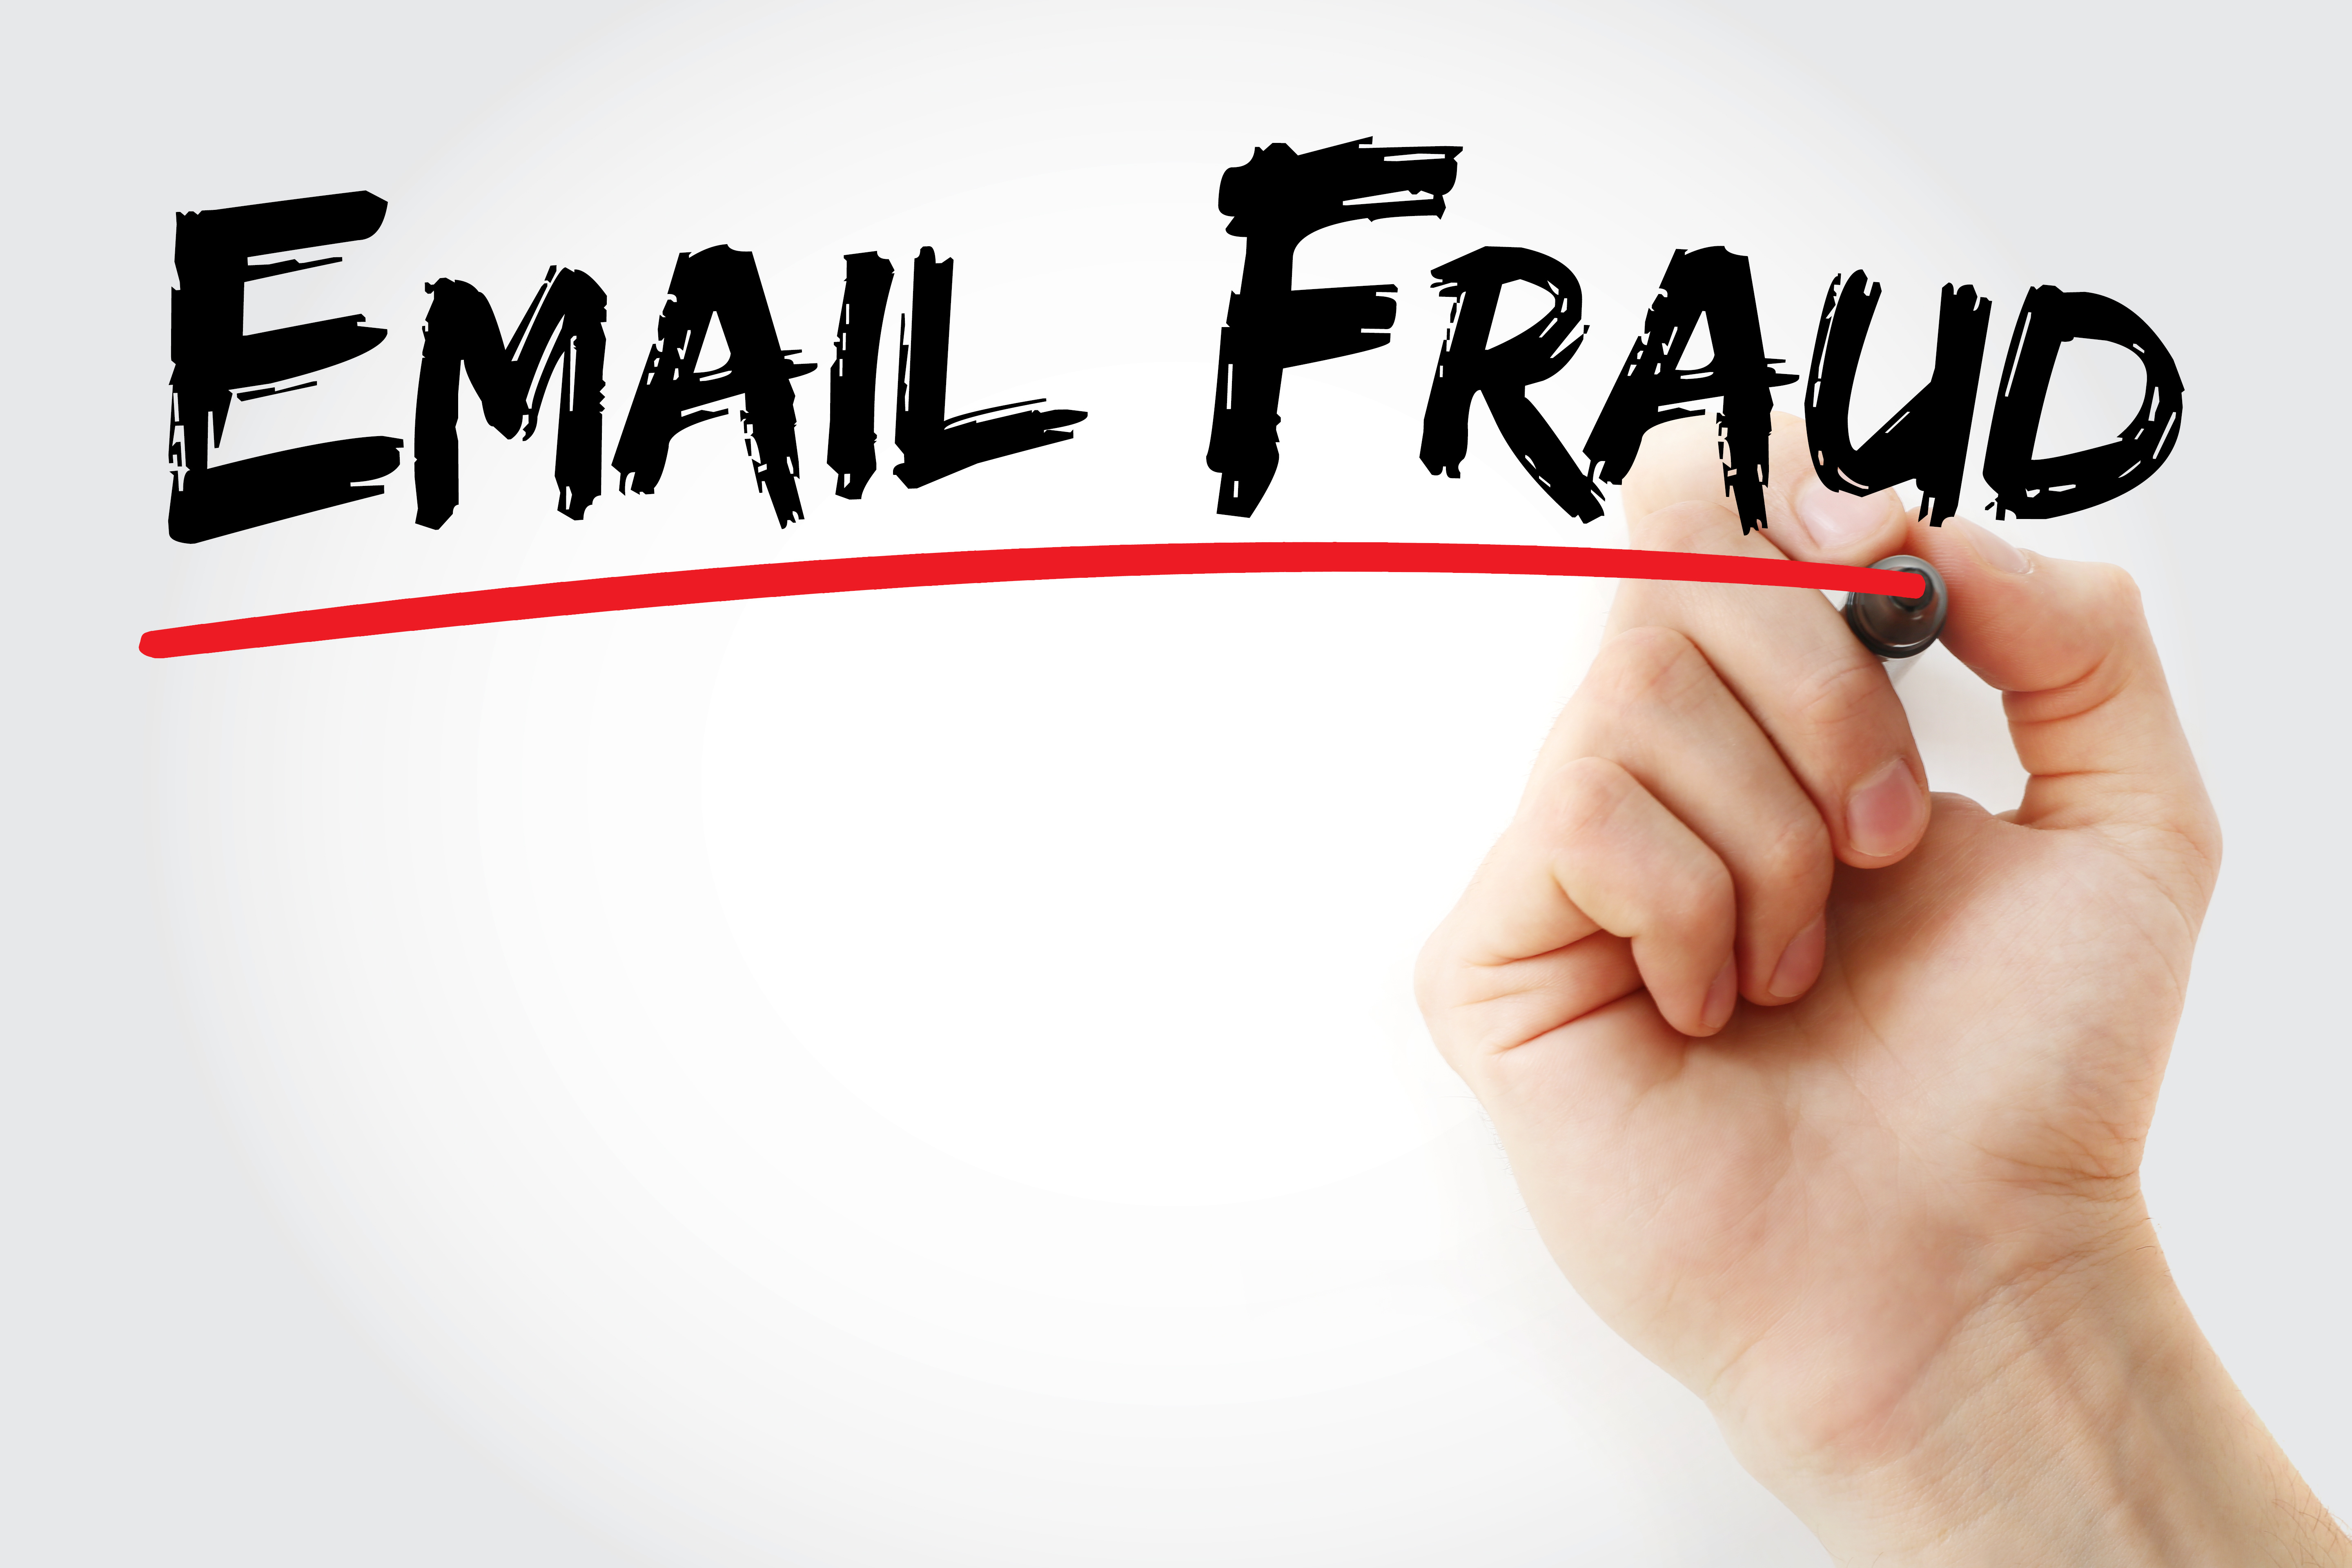 Email Spoofing – what is it and why should I care?